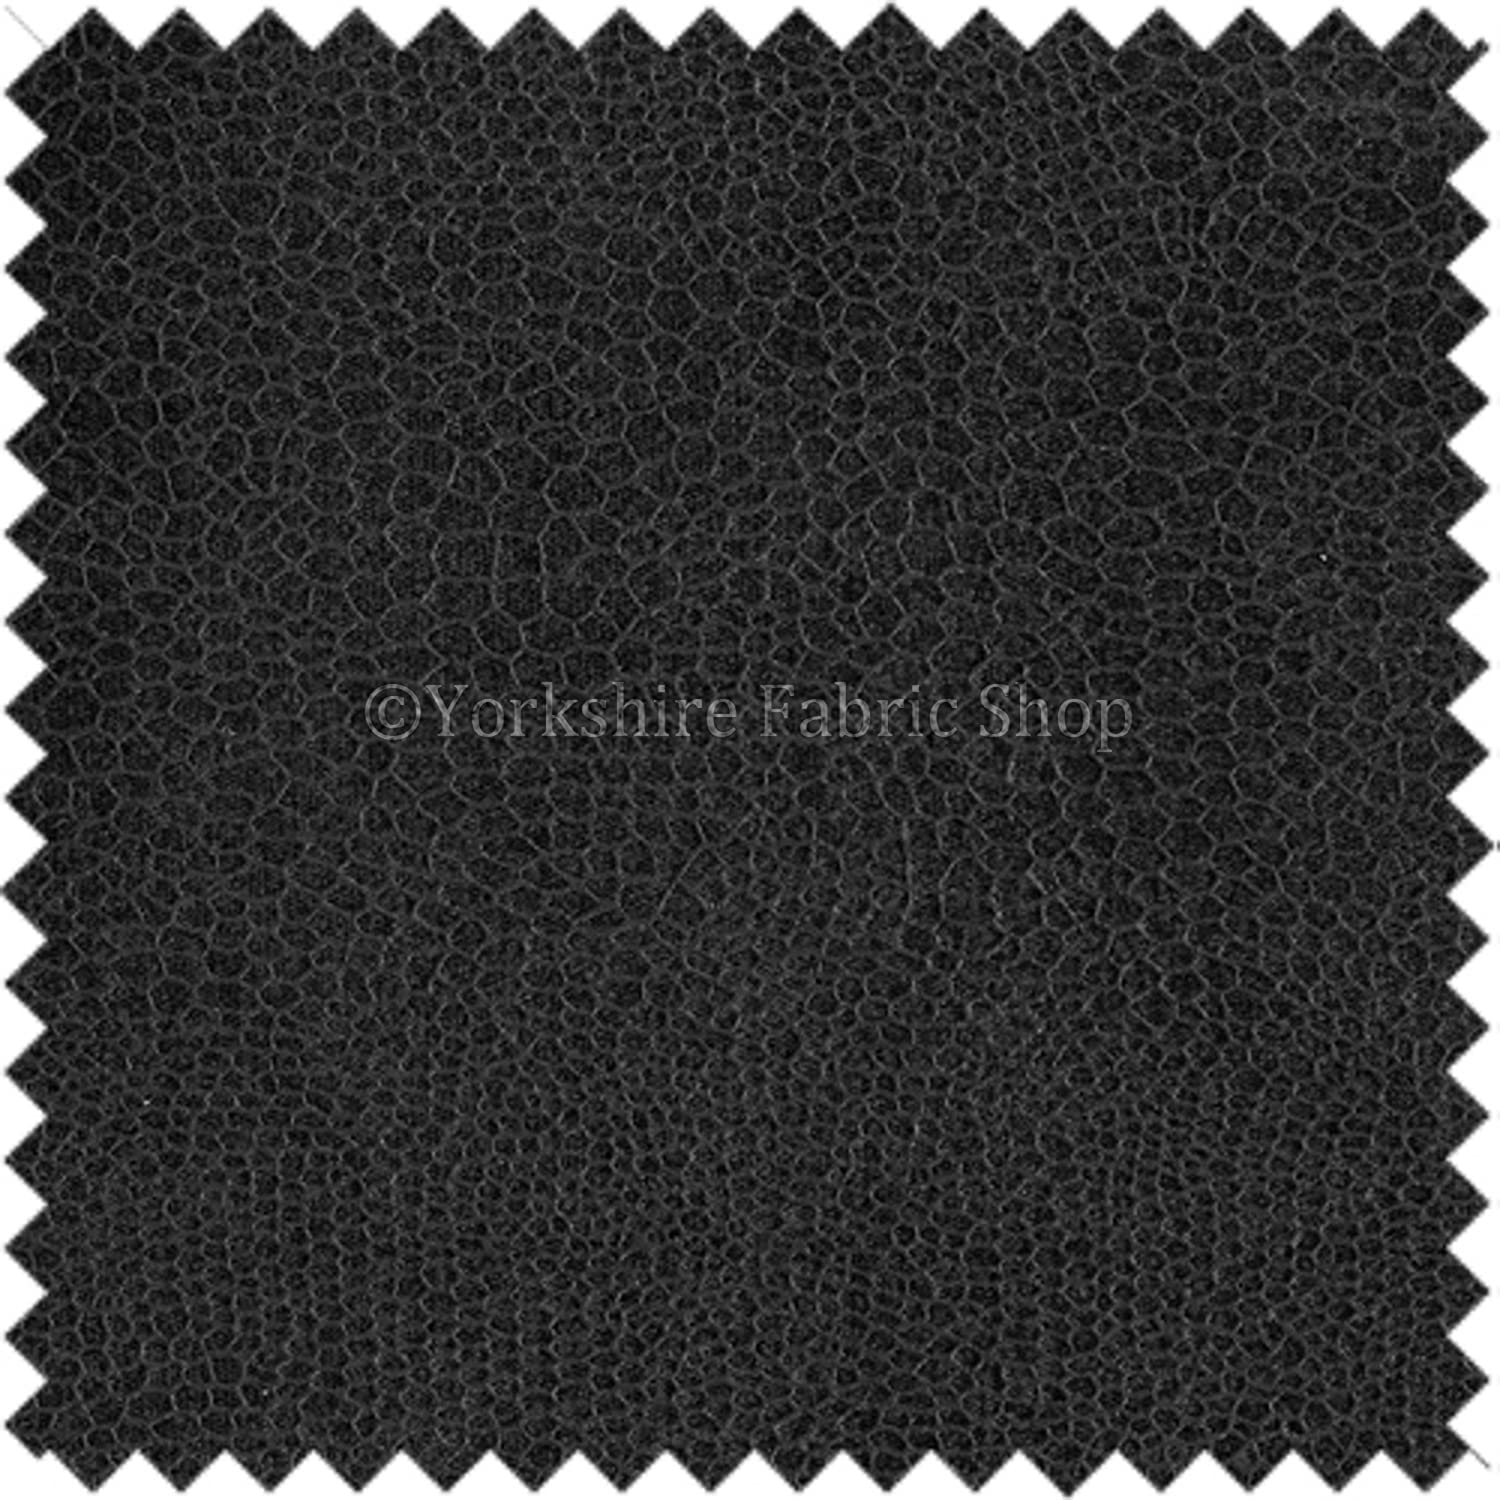 Faux Leather Matt Finish Textured Reptile Pattern Grey Colour Upholstery Fabric